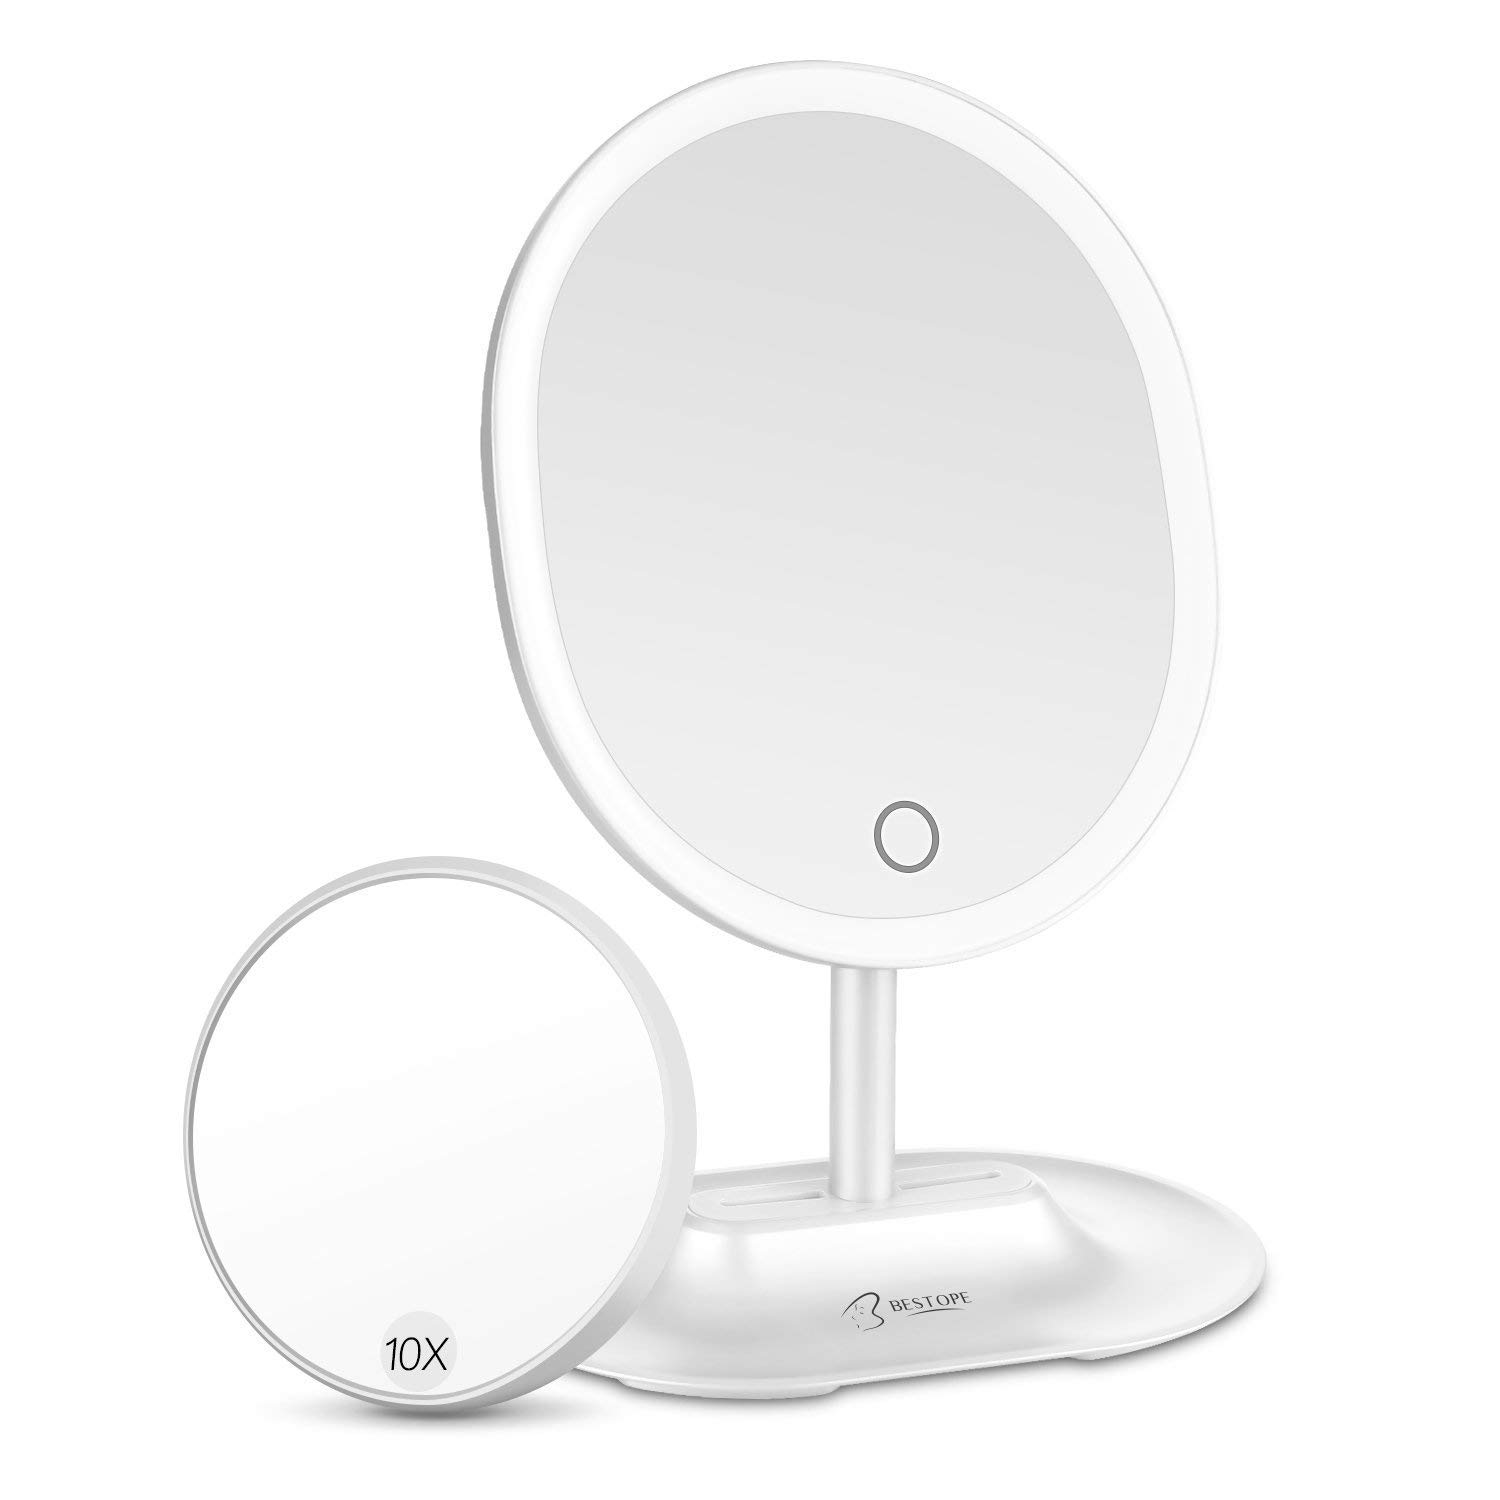 LED Vanity Mirror, Natural Illuminated Cosmetic Mirror Touch Screen, USB & Battery Power Adapter, Oval Dimmable Countertop Makeup Mirror XIANGHUi